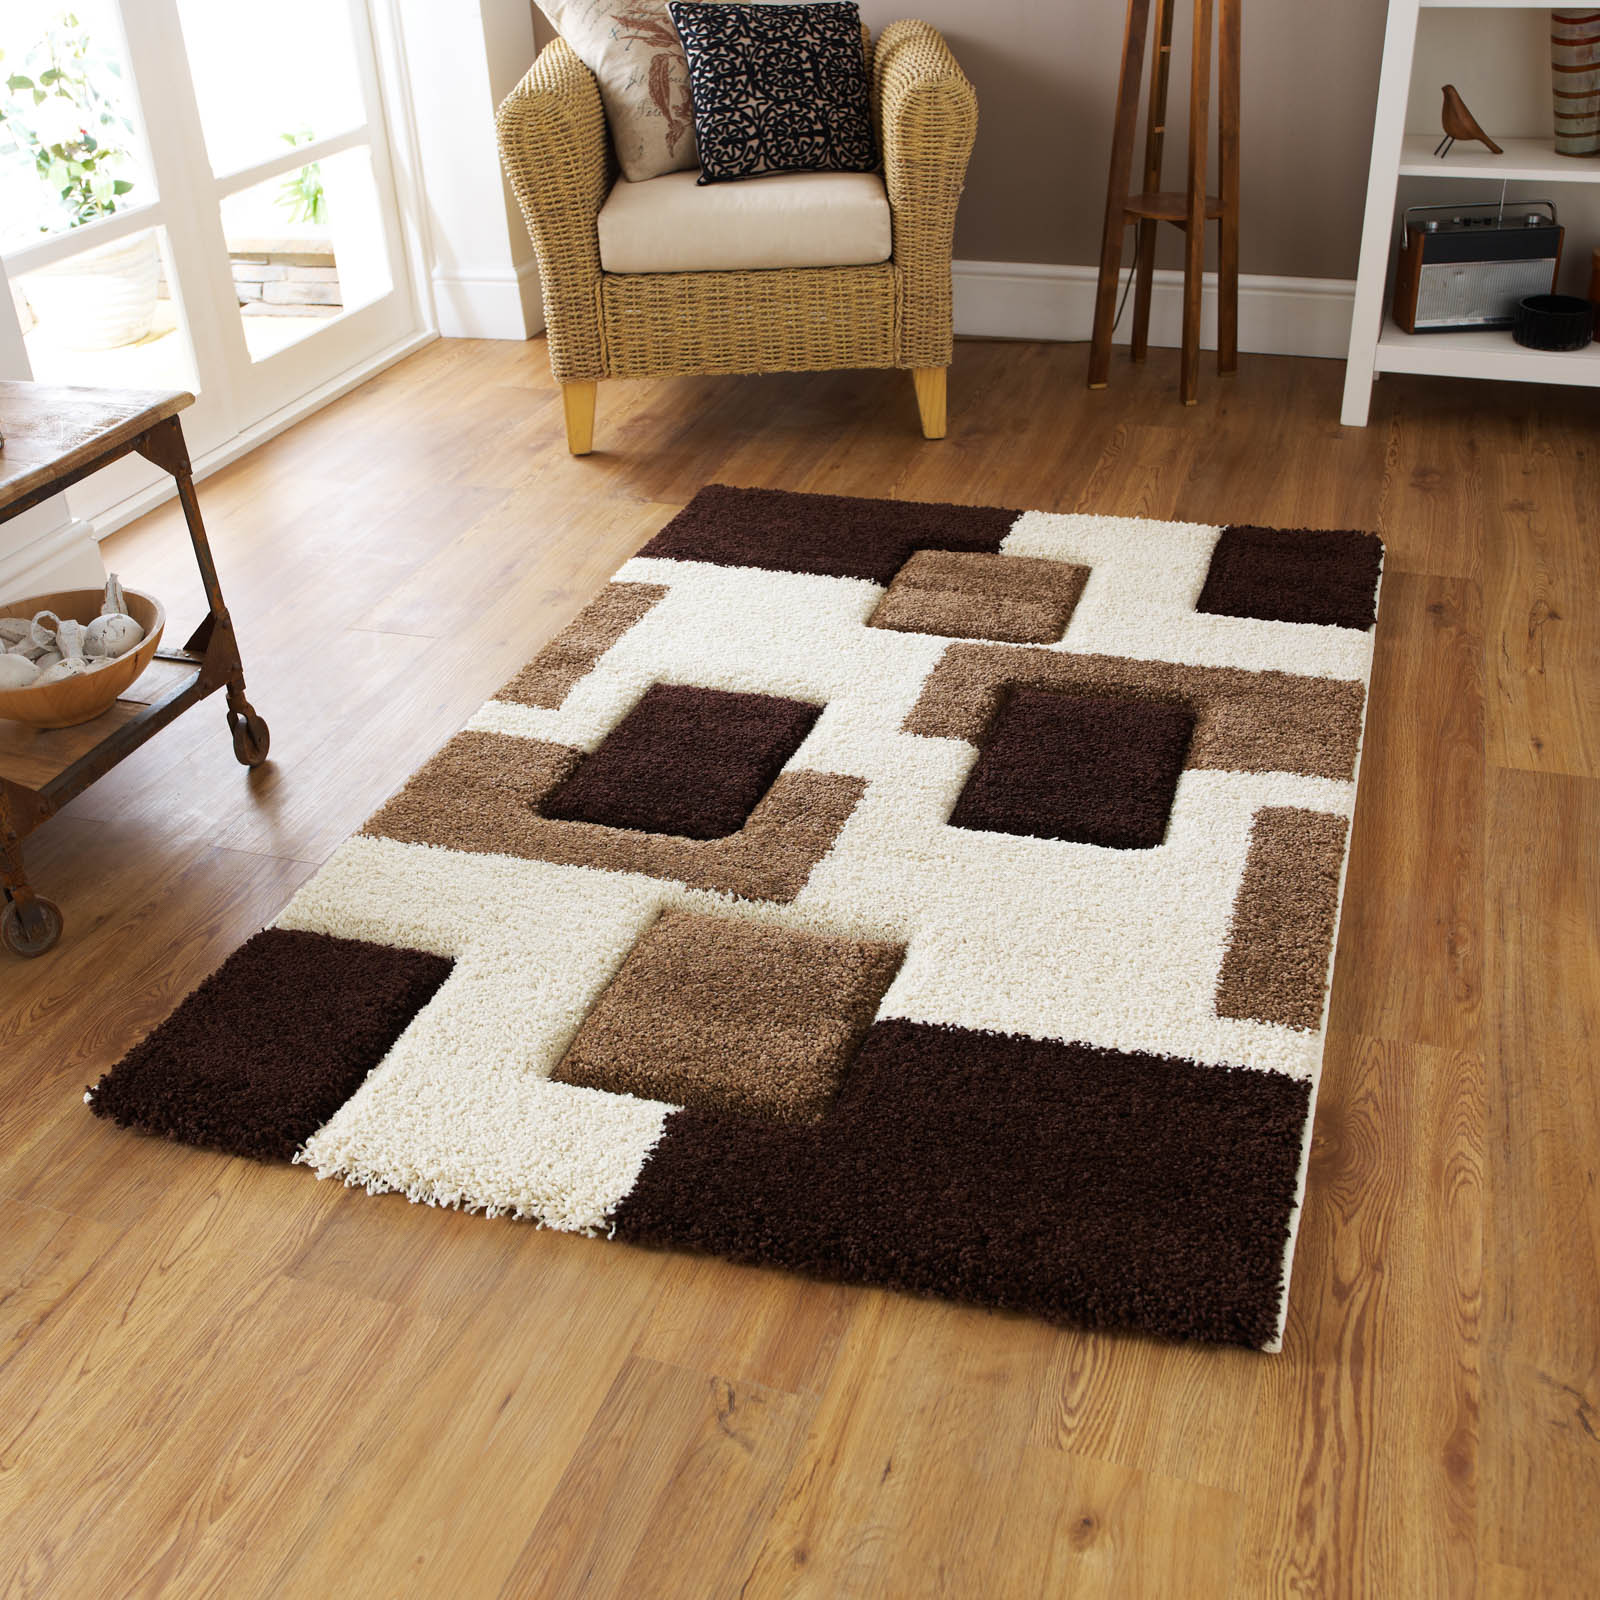 Fashion Carving Rugs 7646 in Ivory Brown